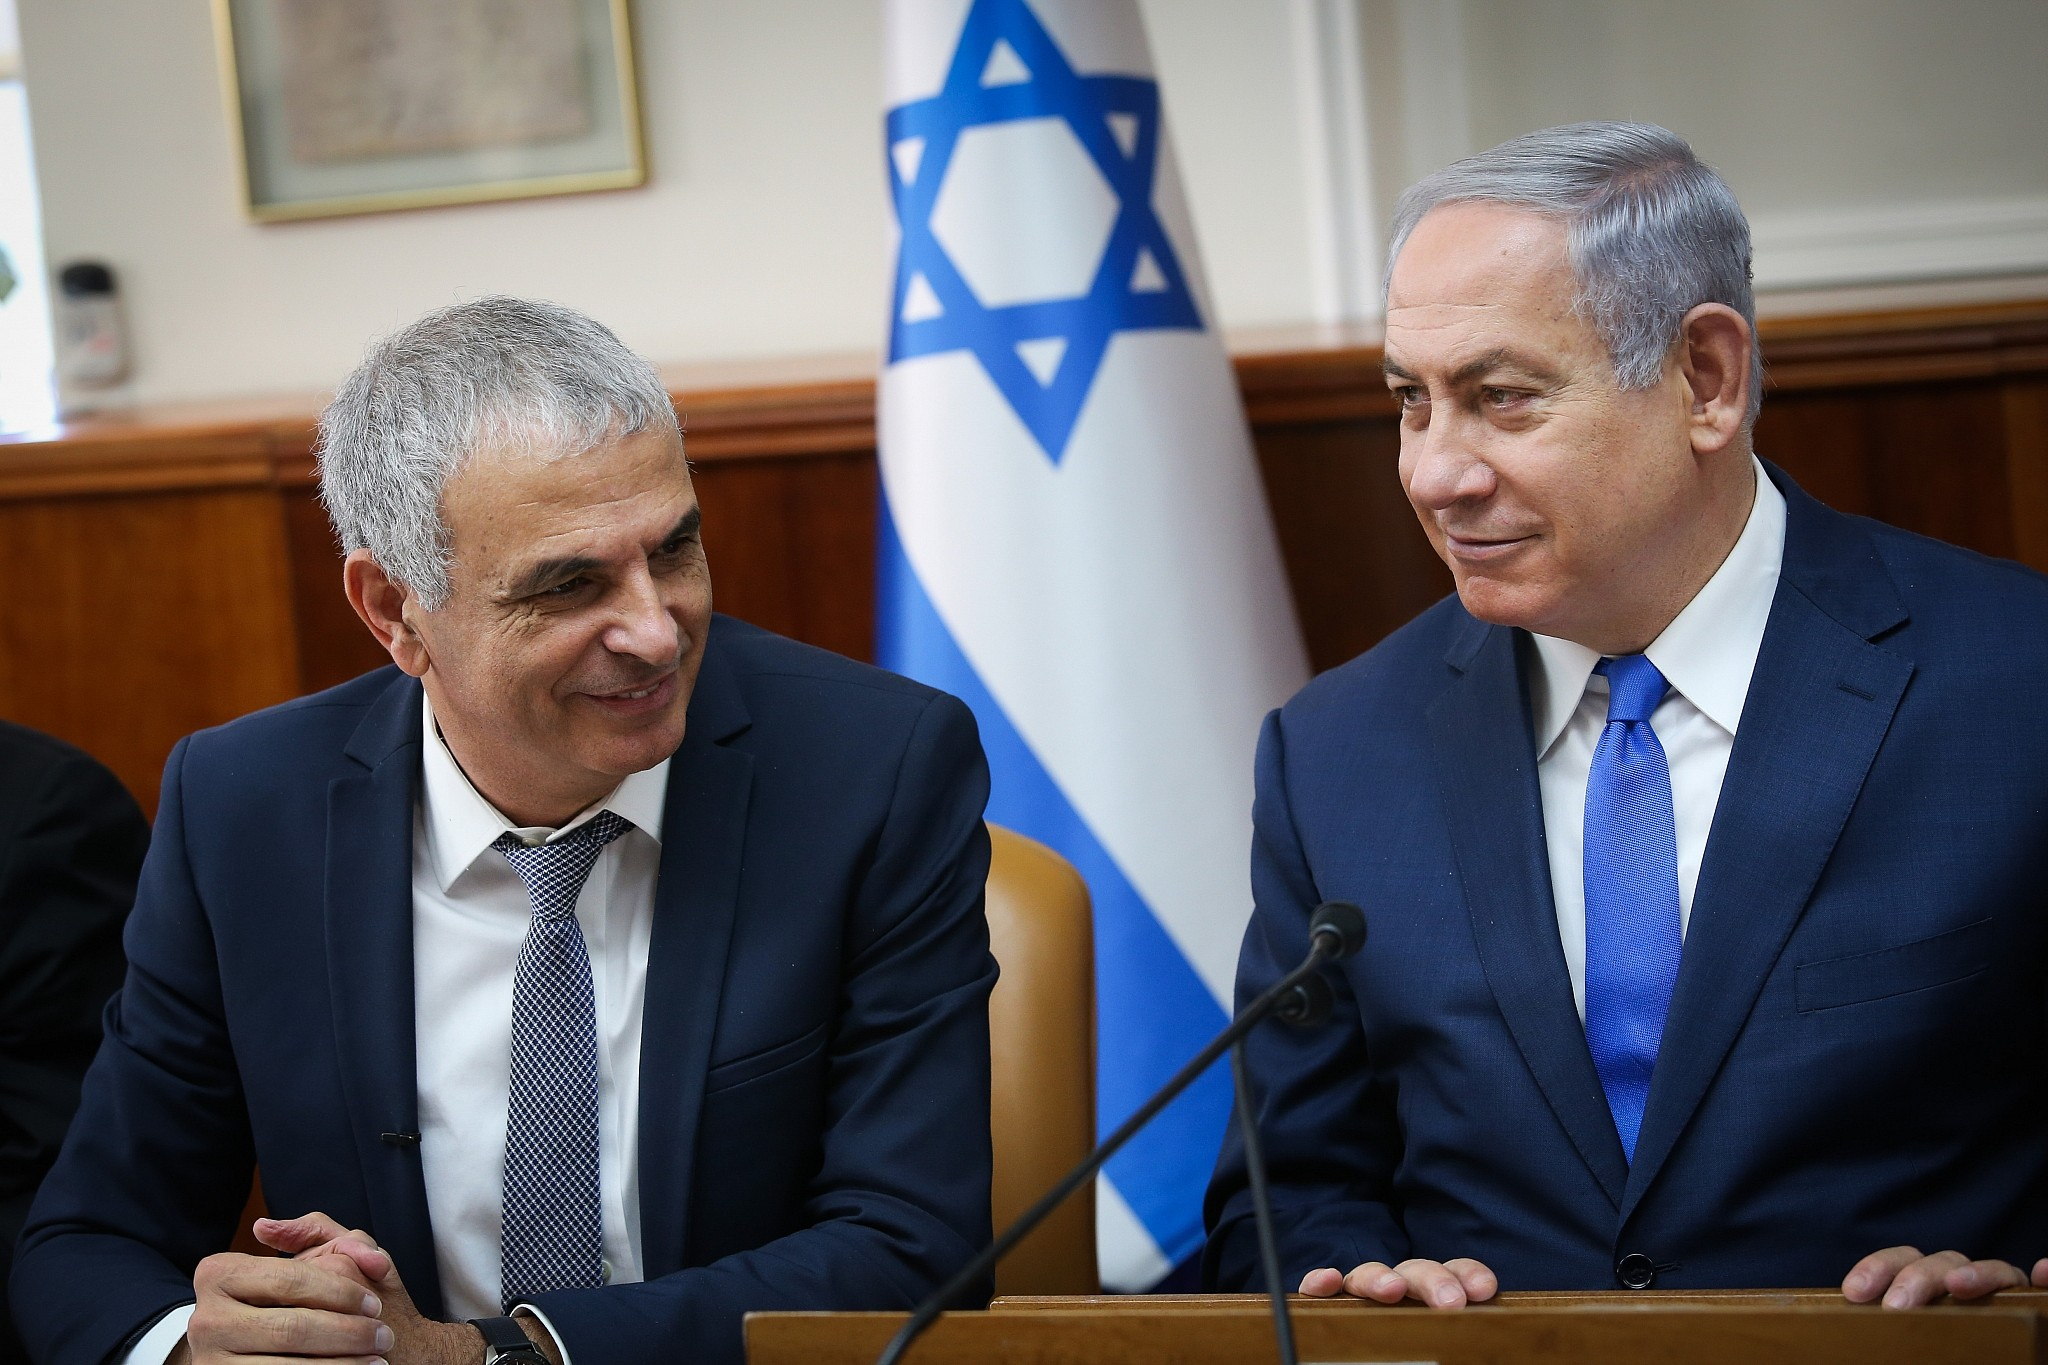 Israeli gov't approves 2019 budget of 117 bln Dollars